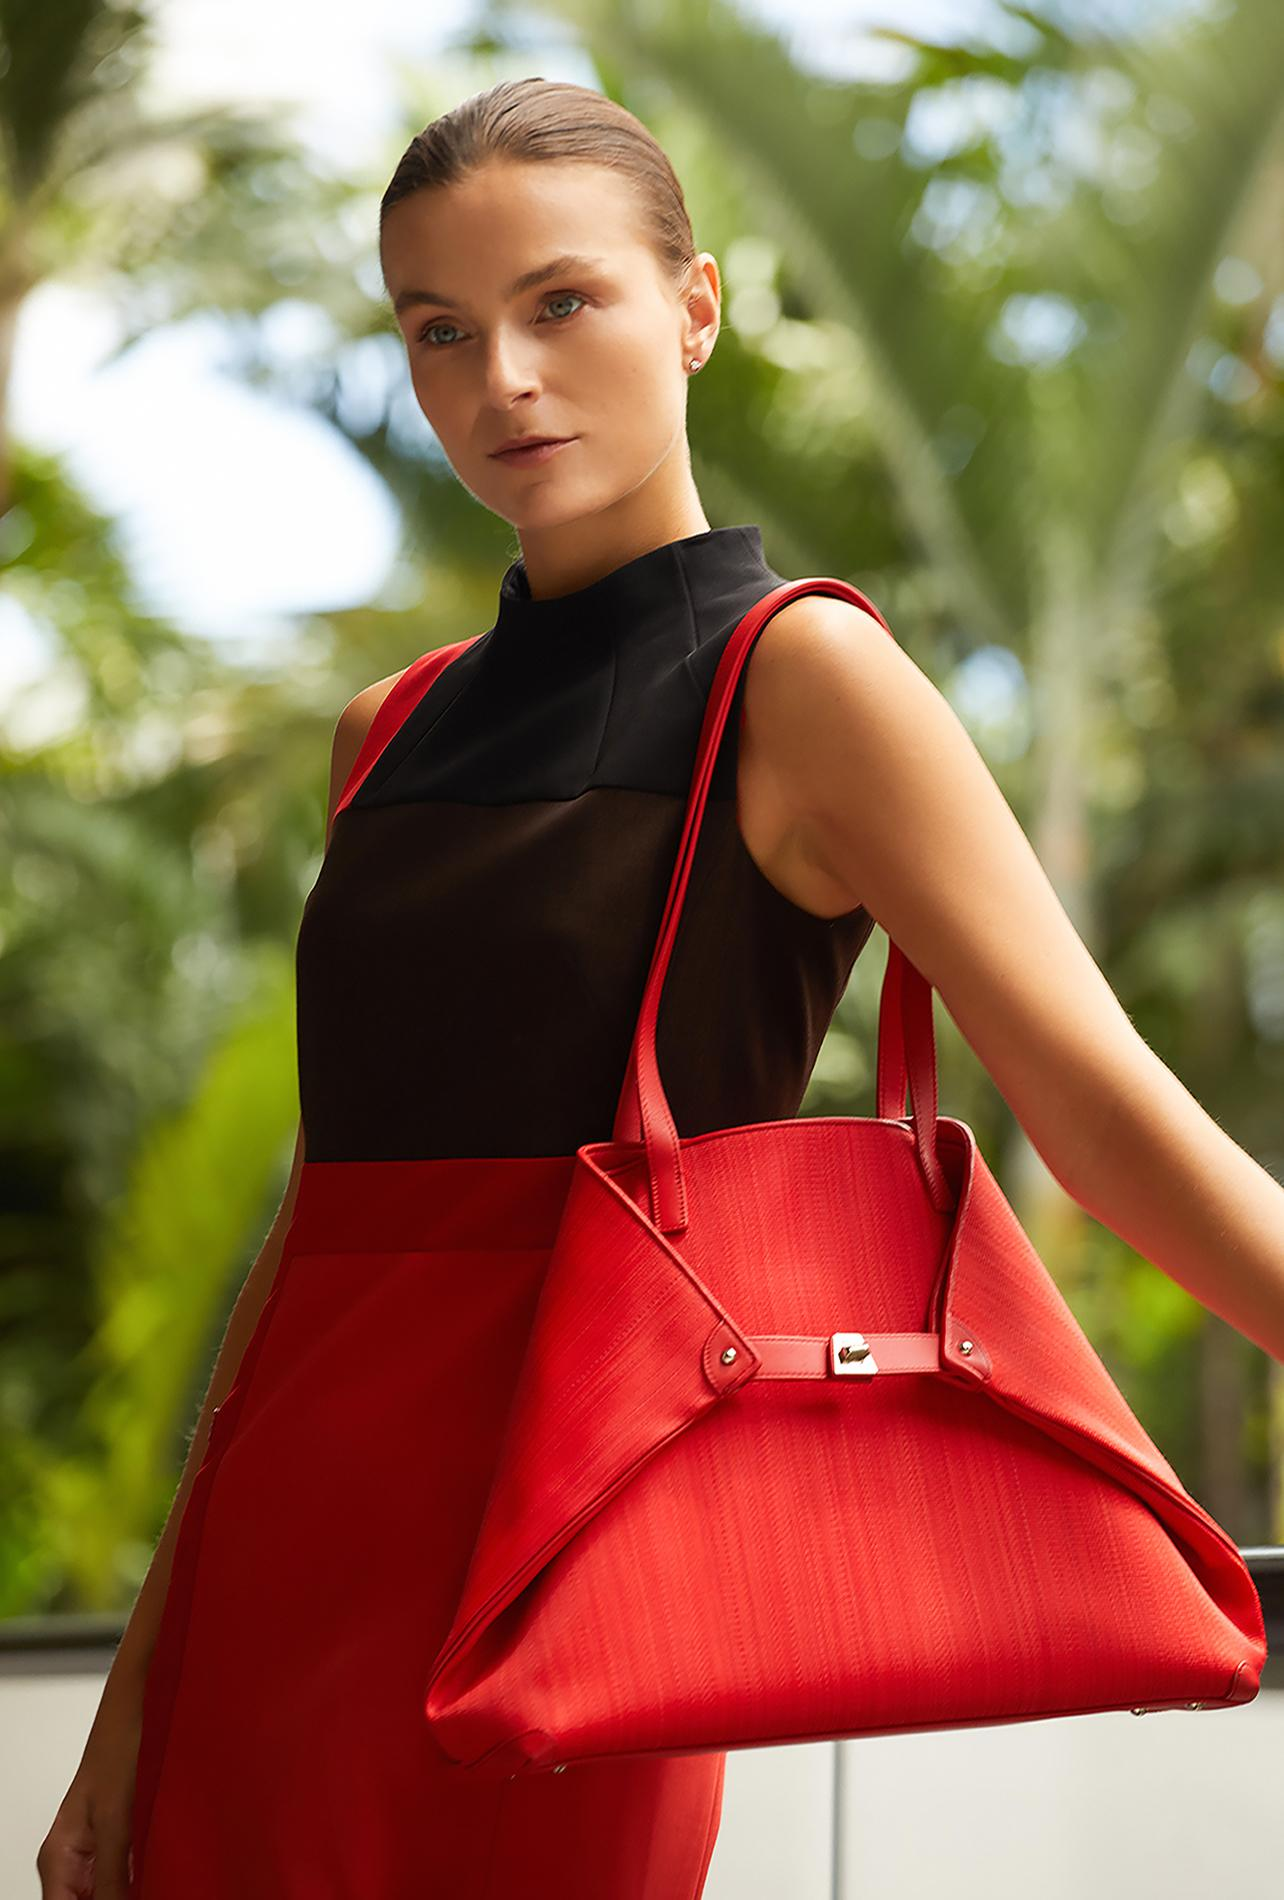 Akris red, orange and black patchwork wool dress and Ai red horsehair shoulder bag